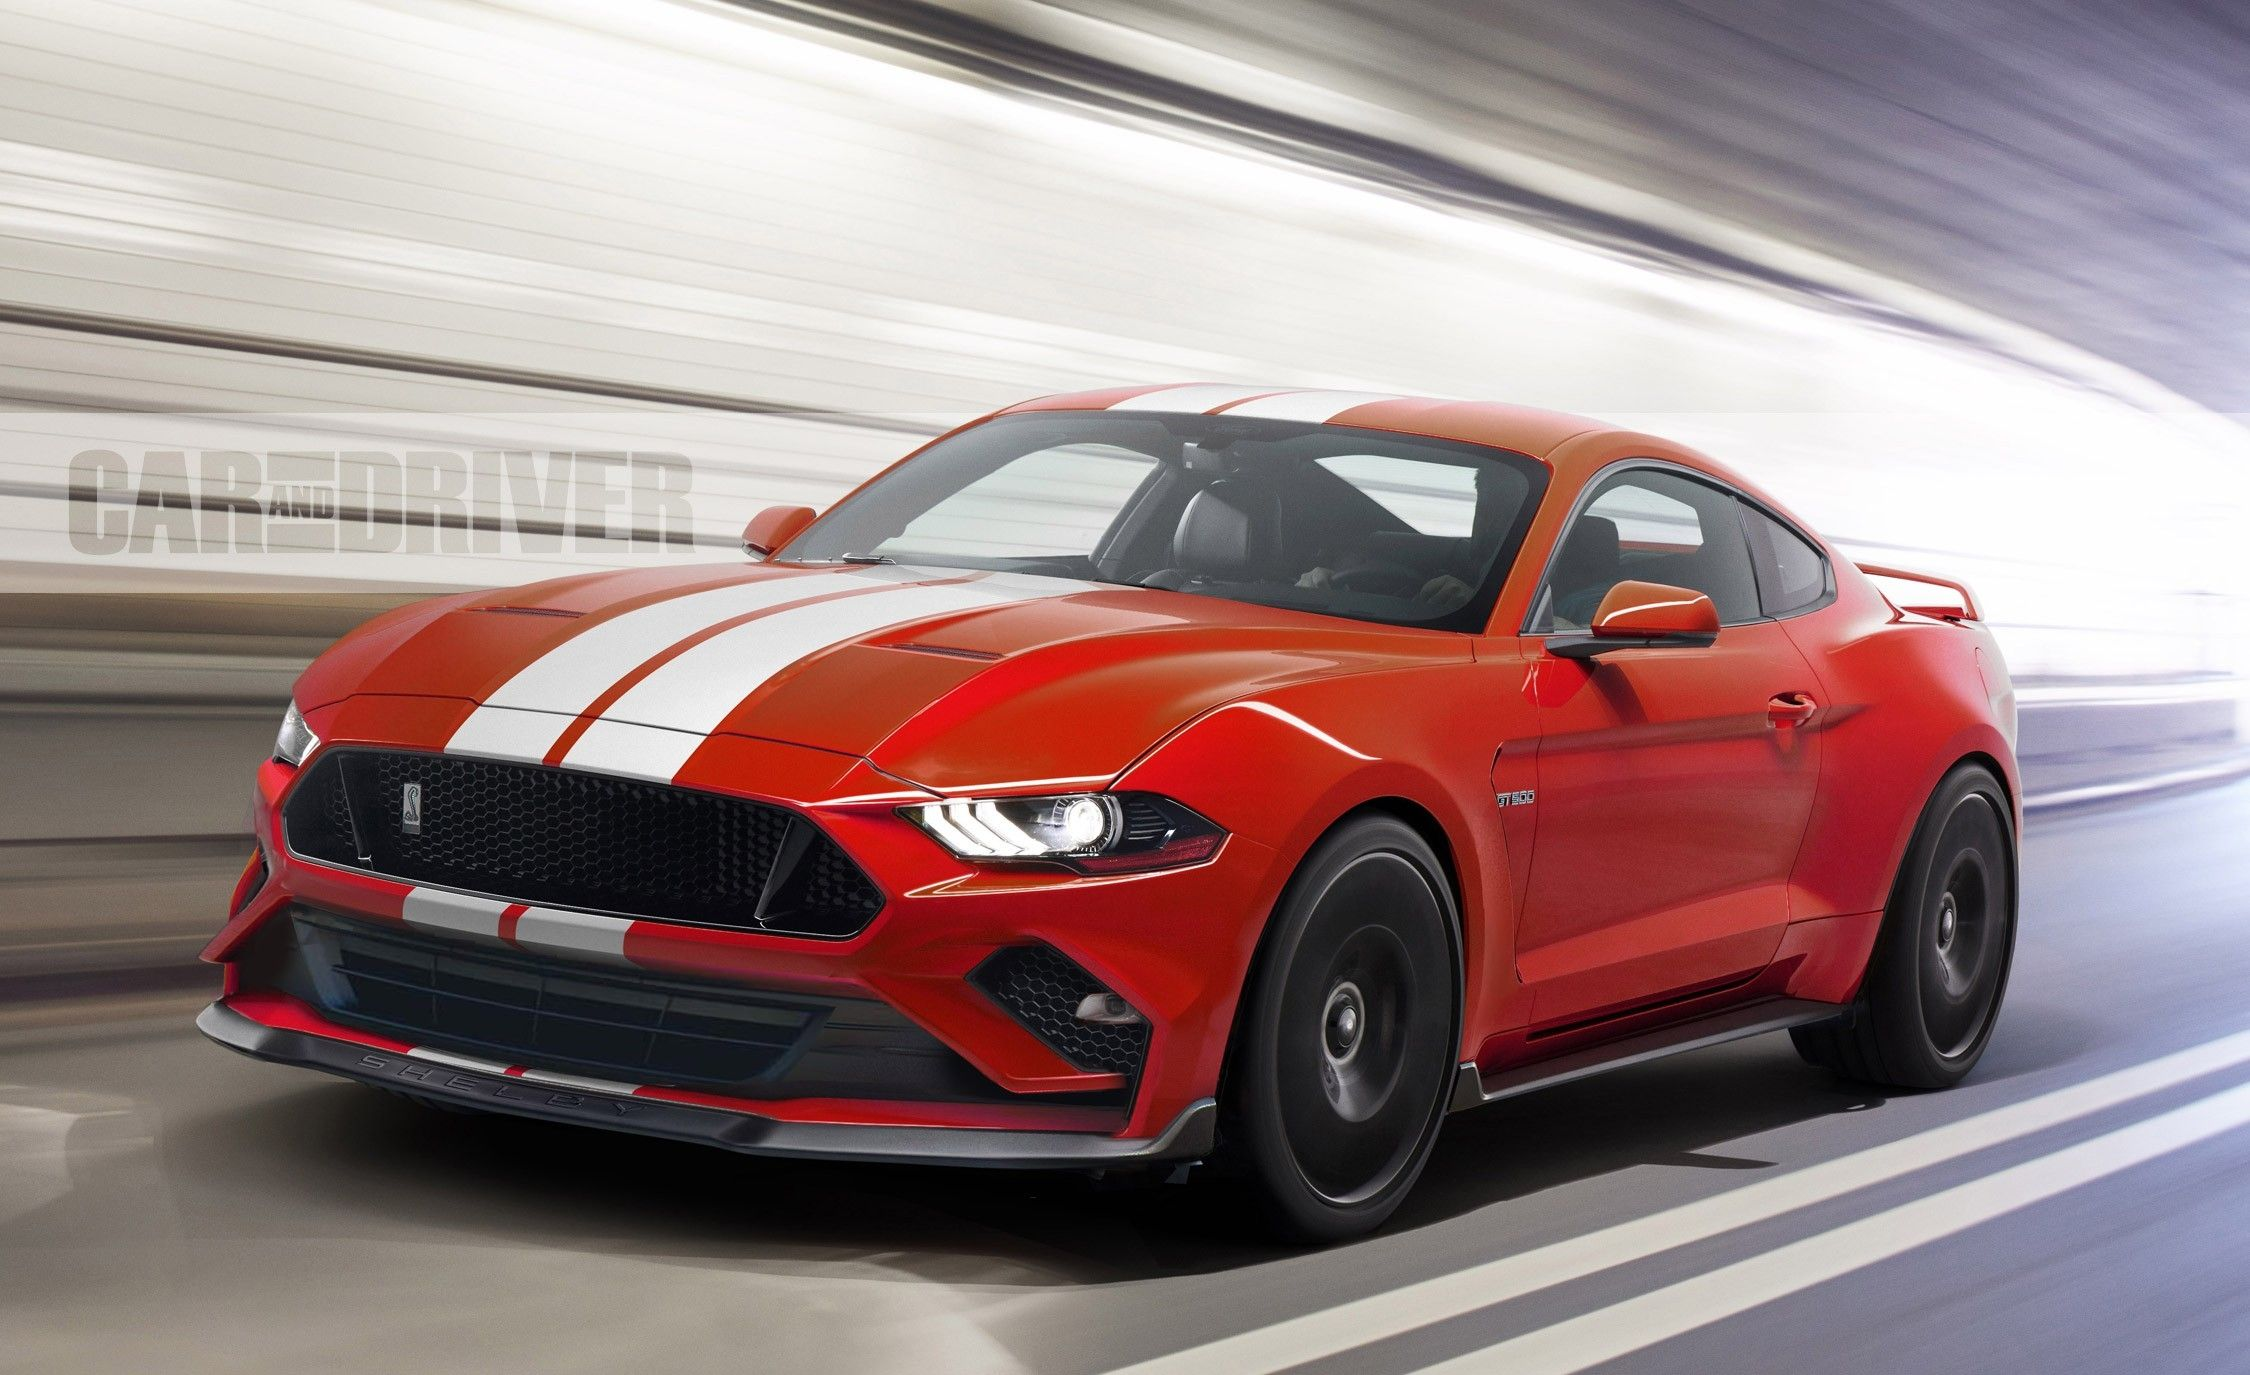 2018 Ford Mustang Shelby Gt 350 Redesign And Price Ford Mustang Shelby Mustang Shelby Ford Mustang Shelby Gt500